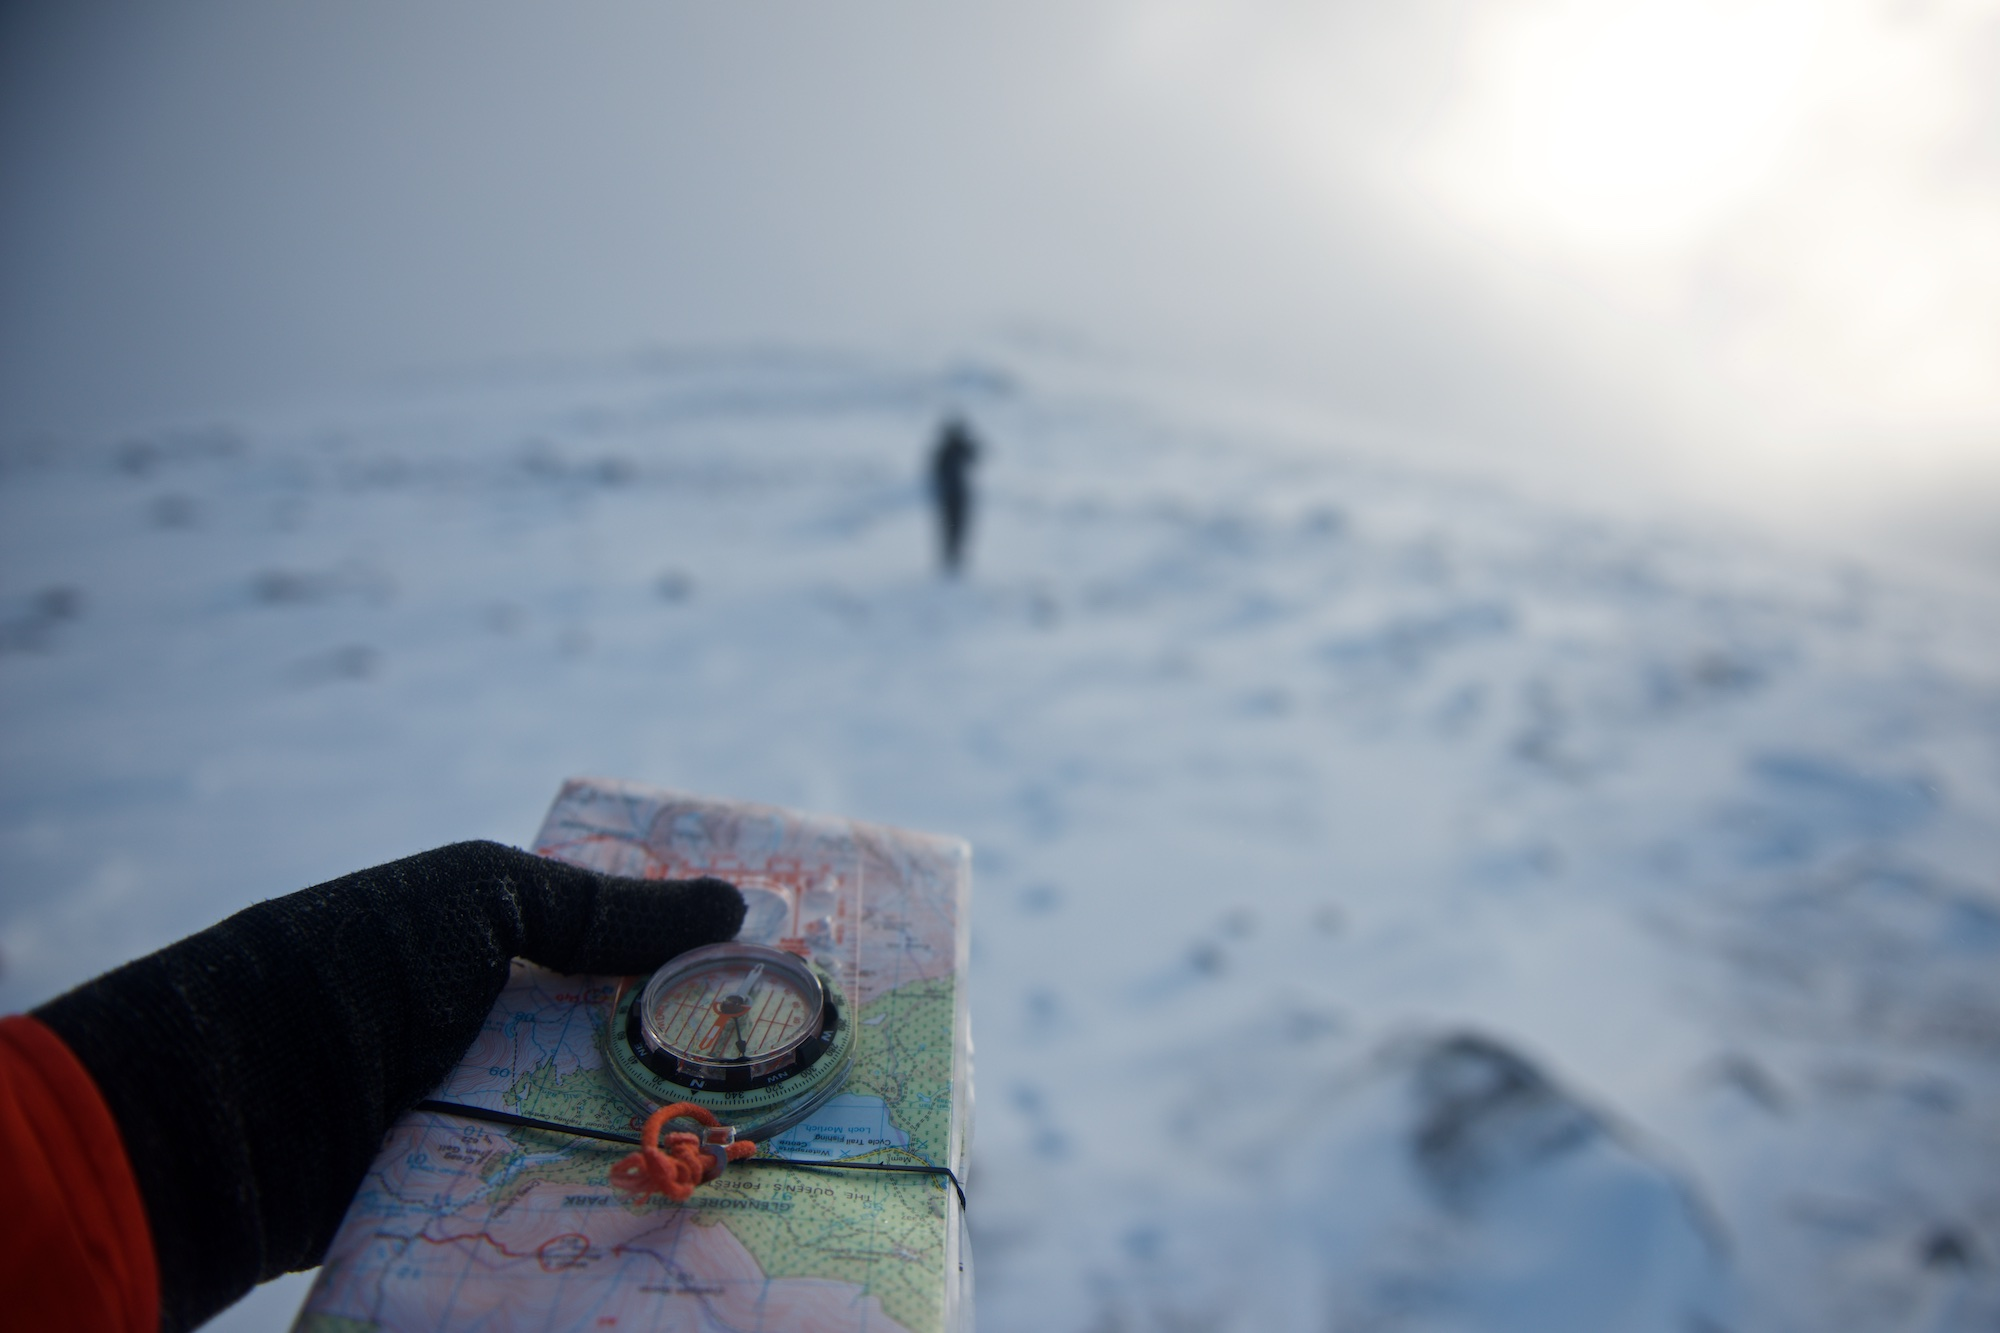 A hand in the foreground holds a compass and map. In the background is a figure walking away. The compass is pointing towards the figure.